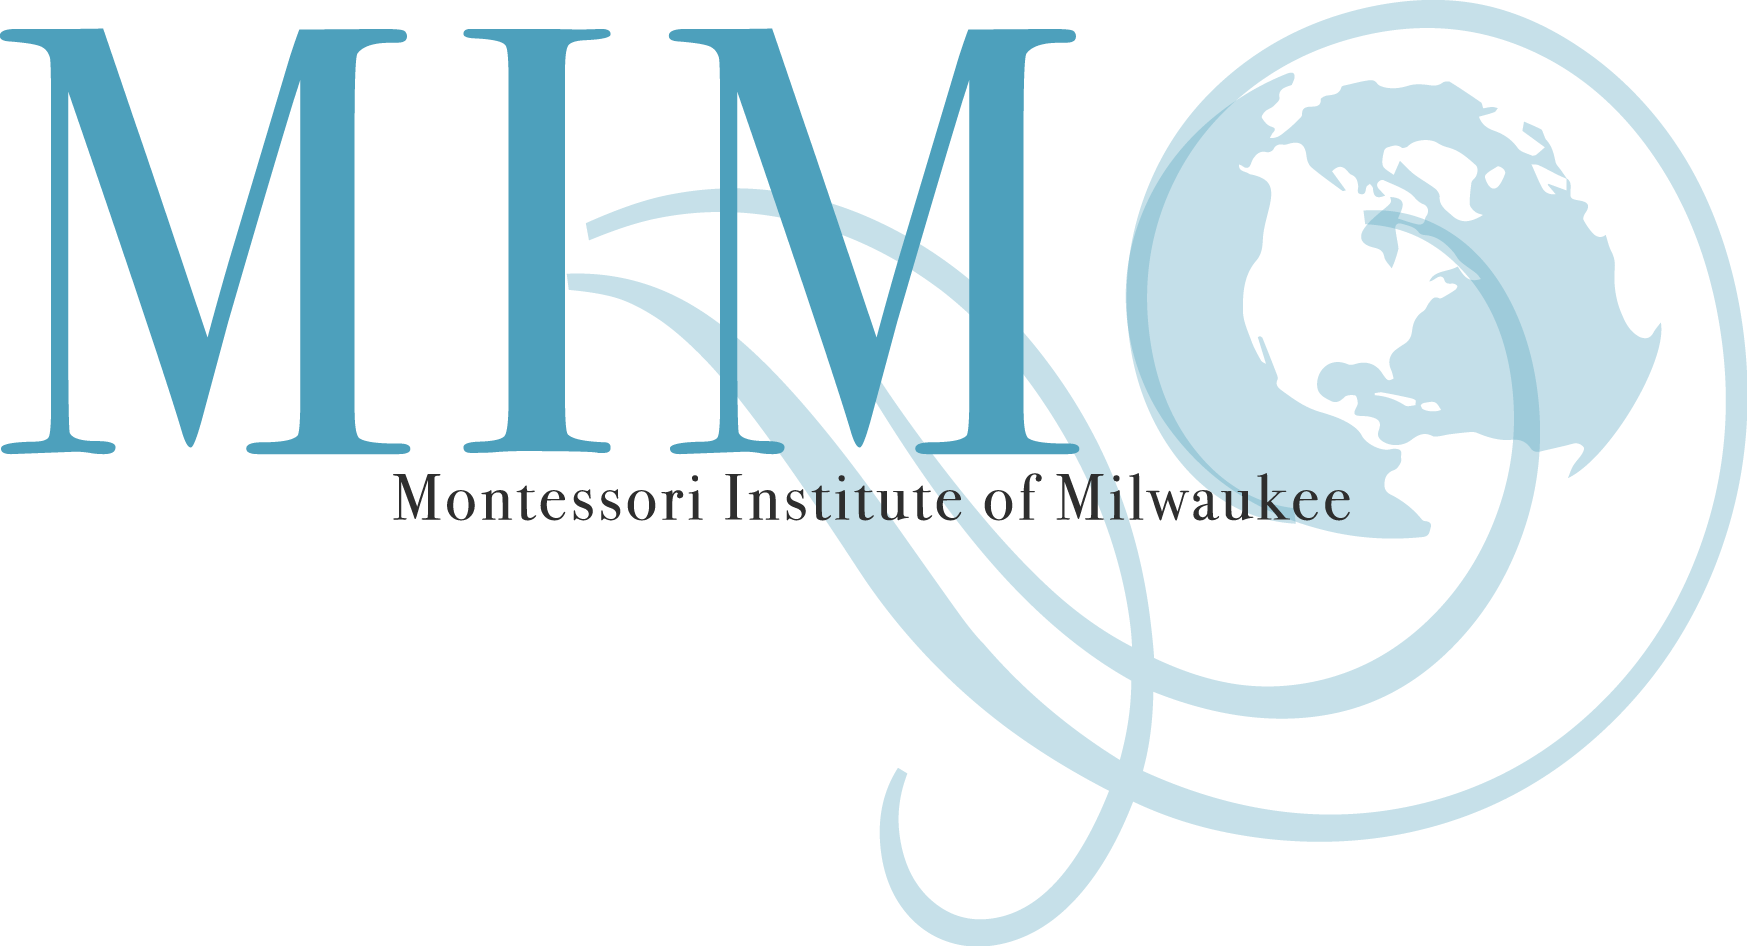 Montessori Institute of Milwaukee